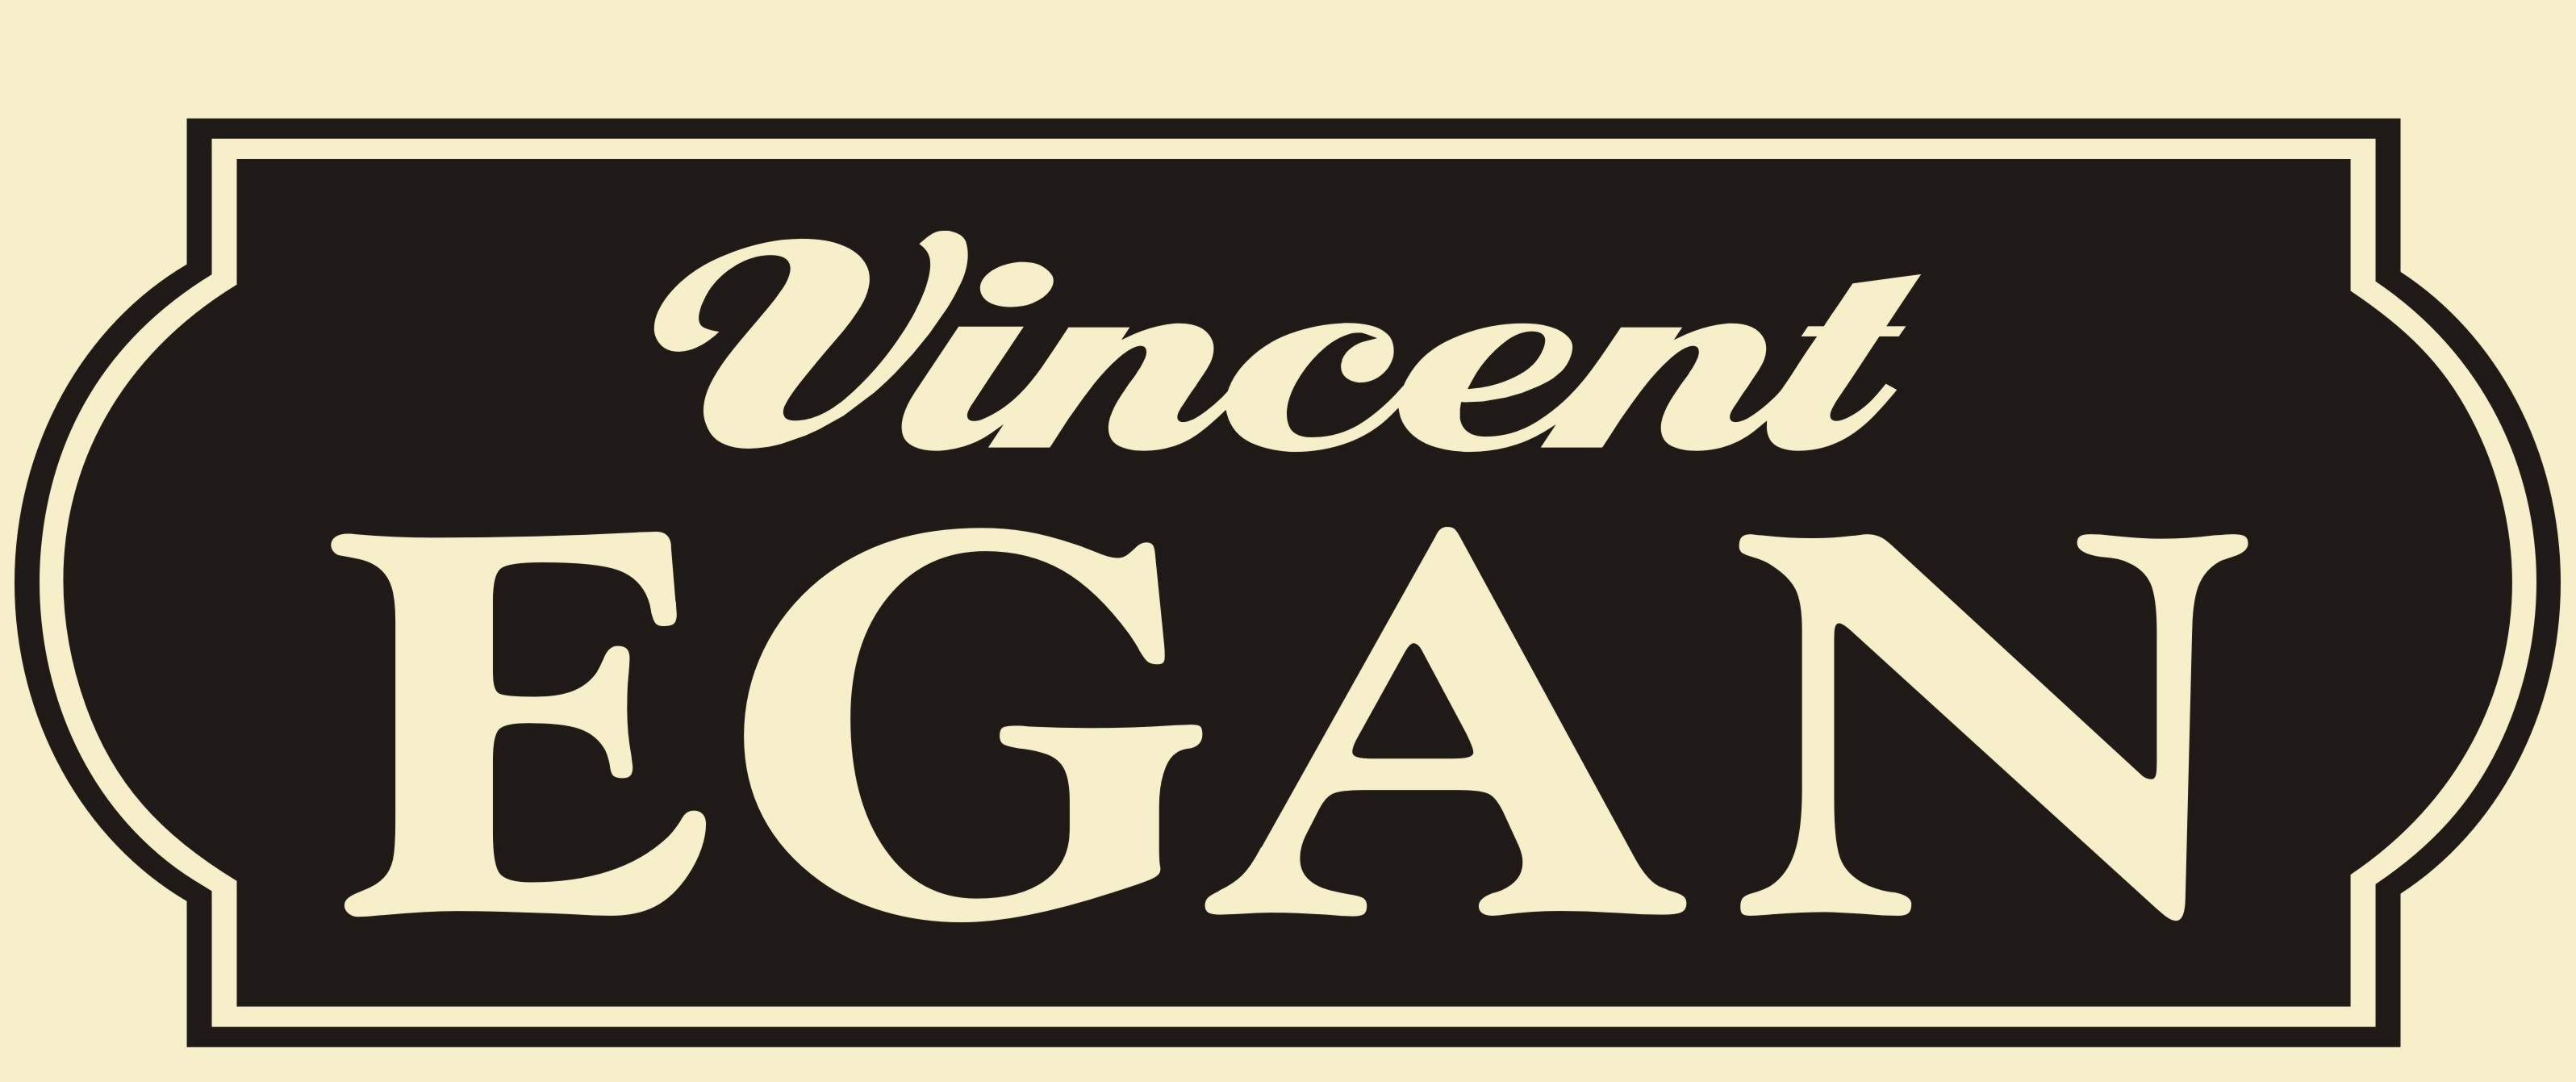 vincentegan